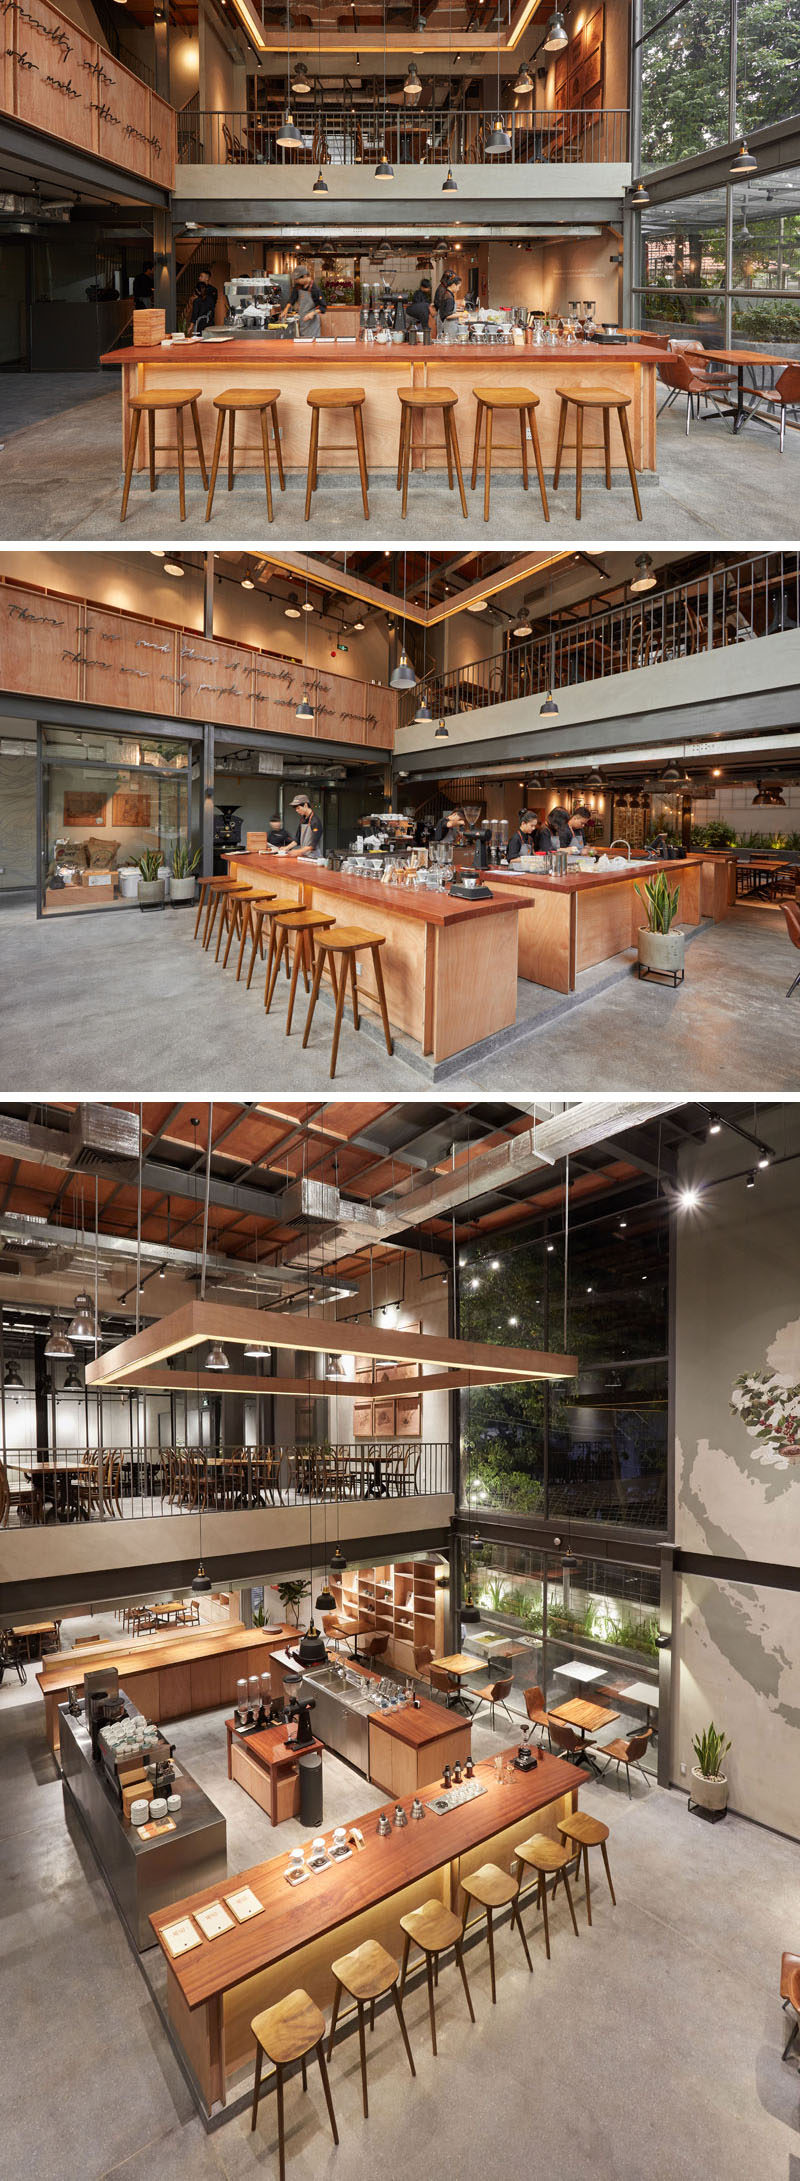 This modern coffee shop has a service area and coffee bar are positioned in the center of the room, allowing people to see the employees making their drinks. #Cafe #CoffeeShop